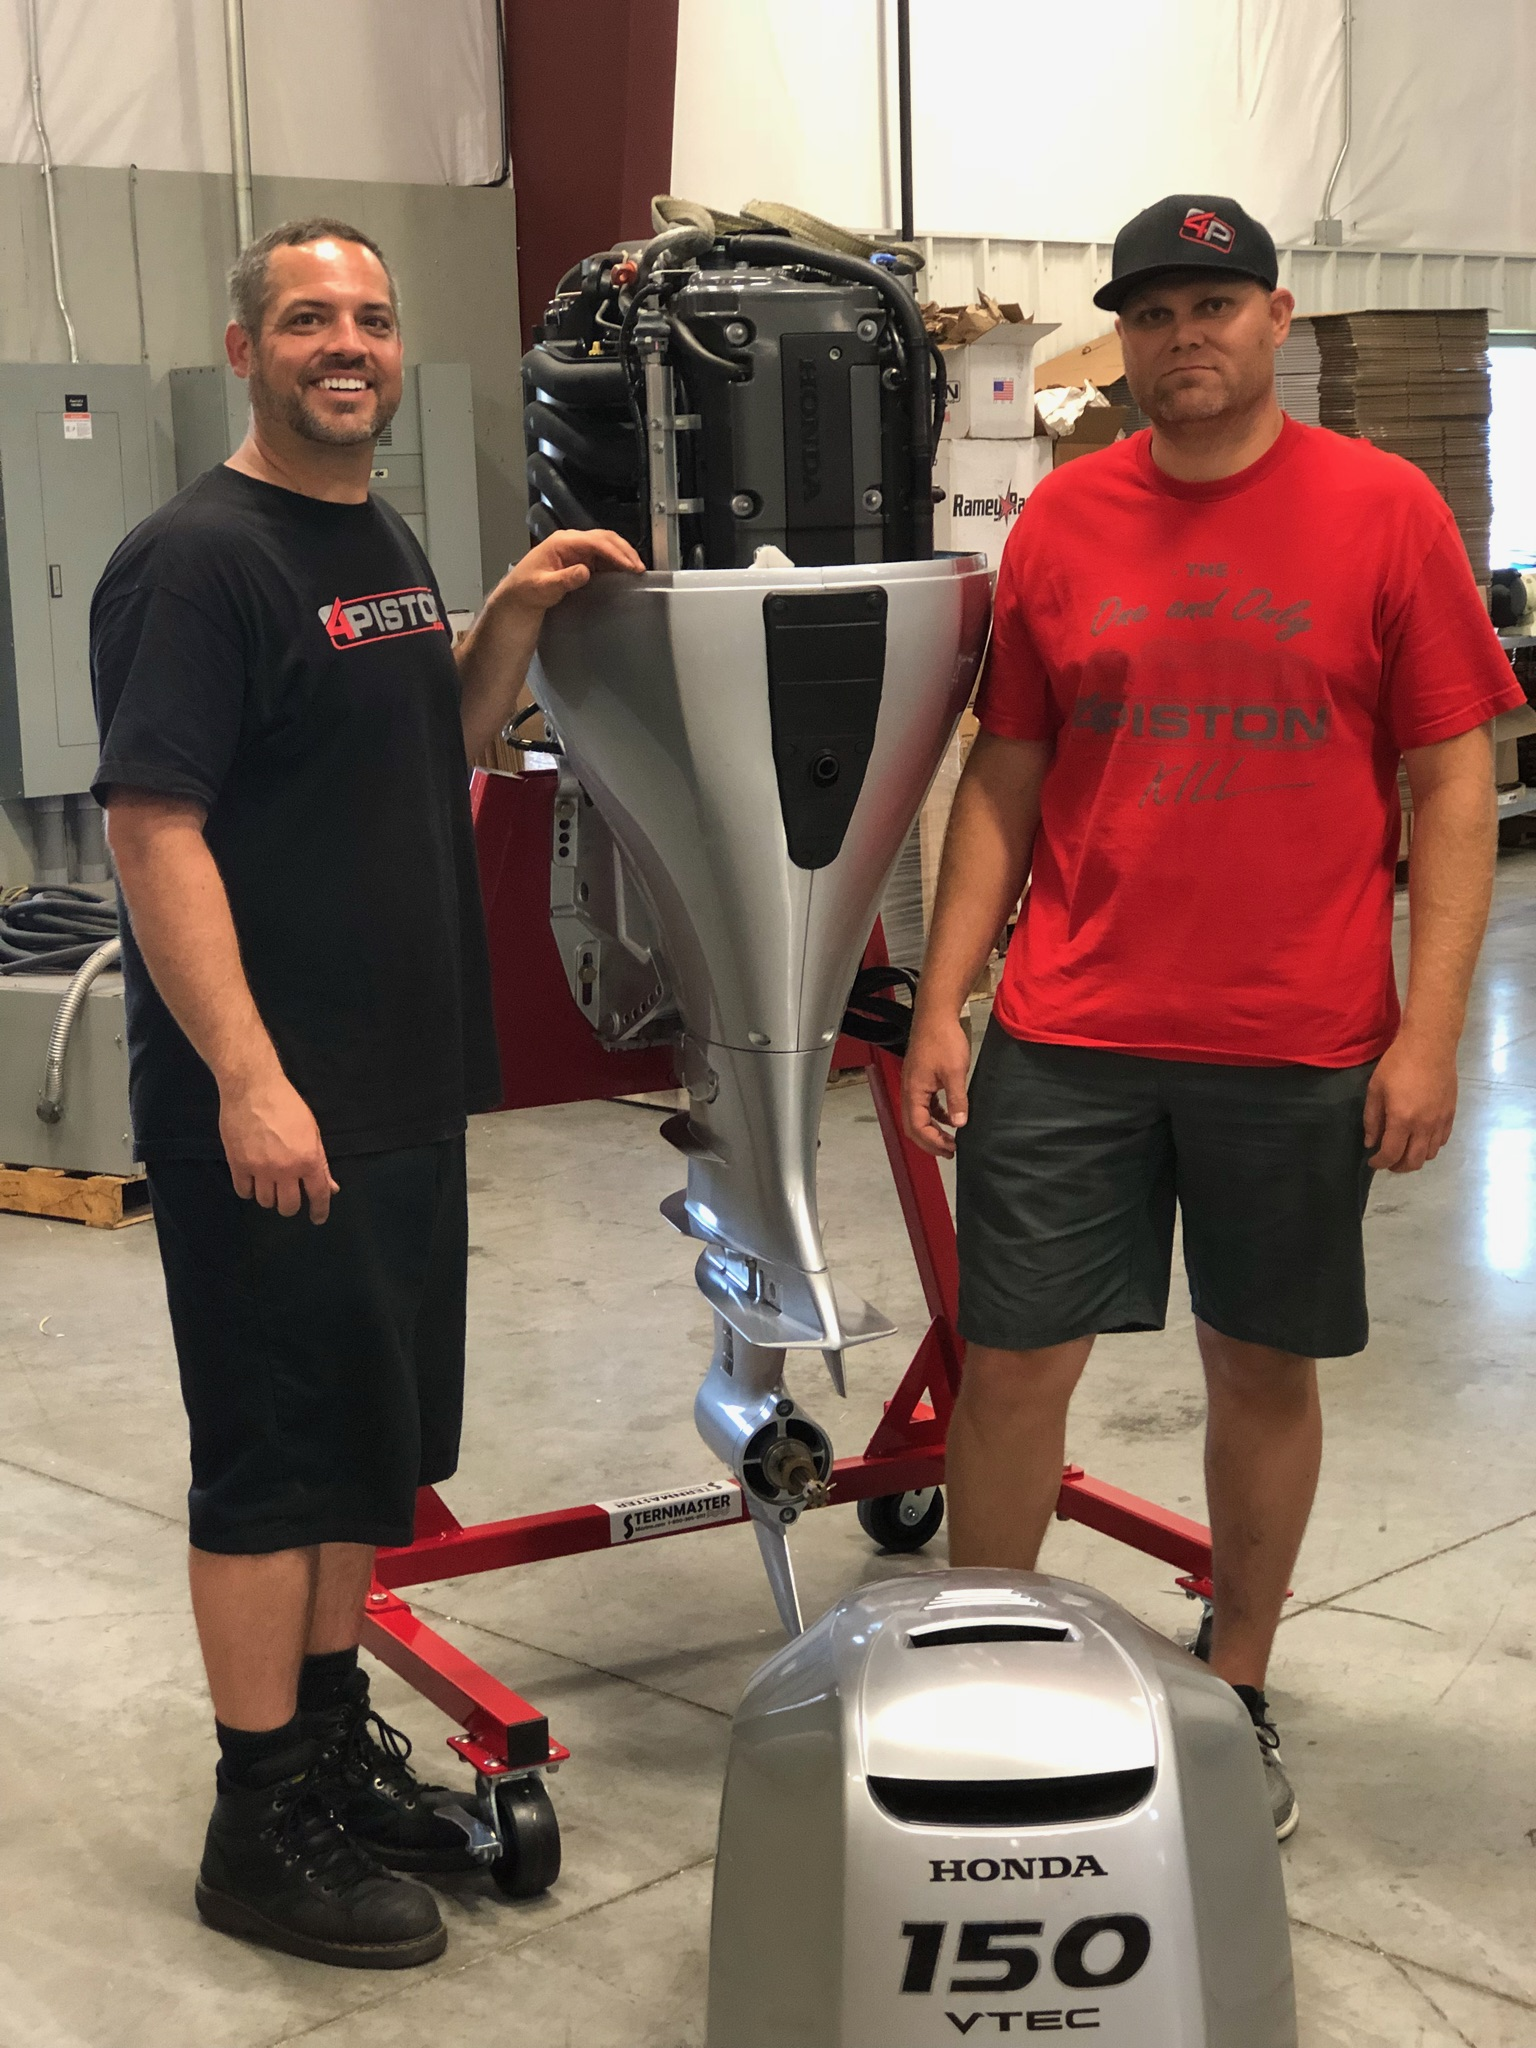 K24 - Luke and Josh from 4 Piston Racing, working on the outboard version of an engine they know extremely well. Their cylinder heads and race engines are legendary. They've built k24 based engines capable of 500 HP, naturally aspirated.